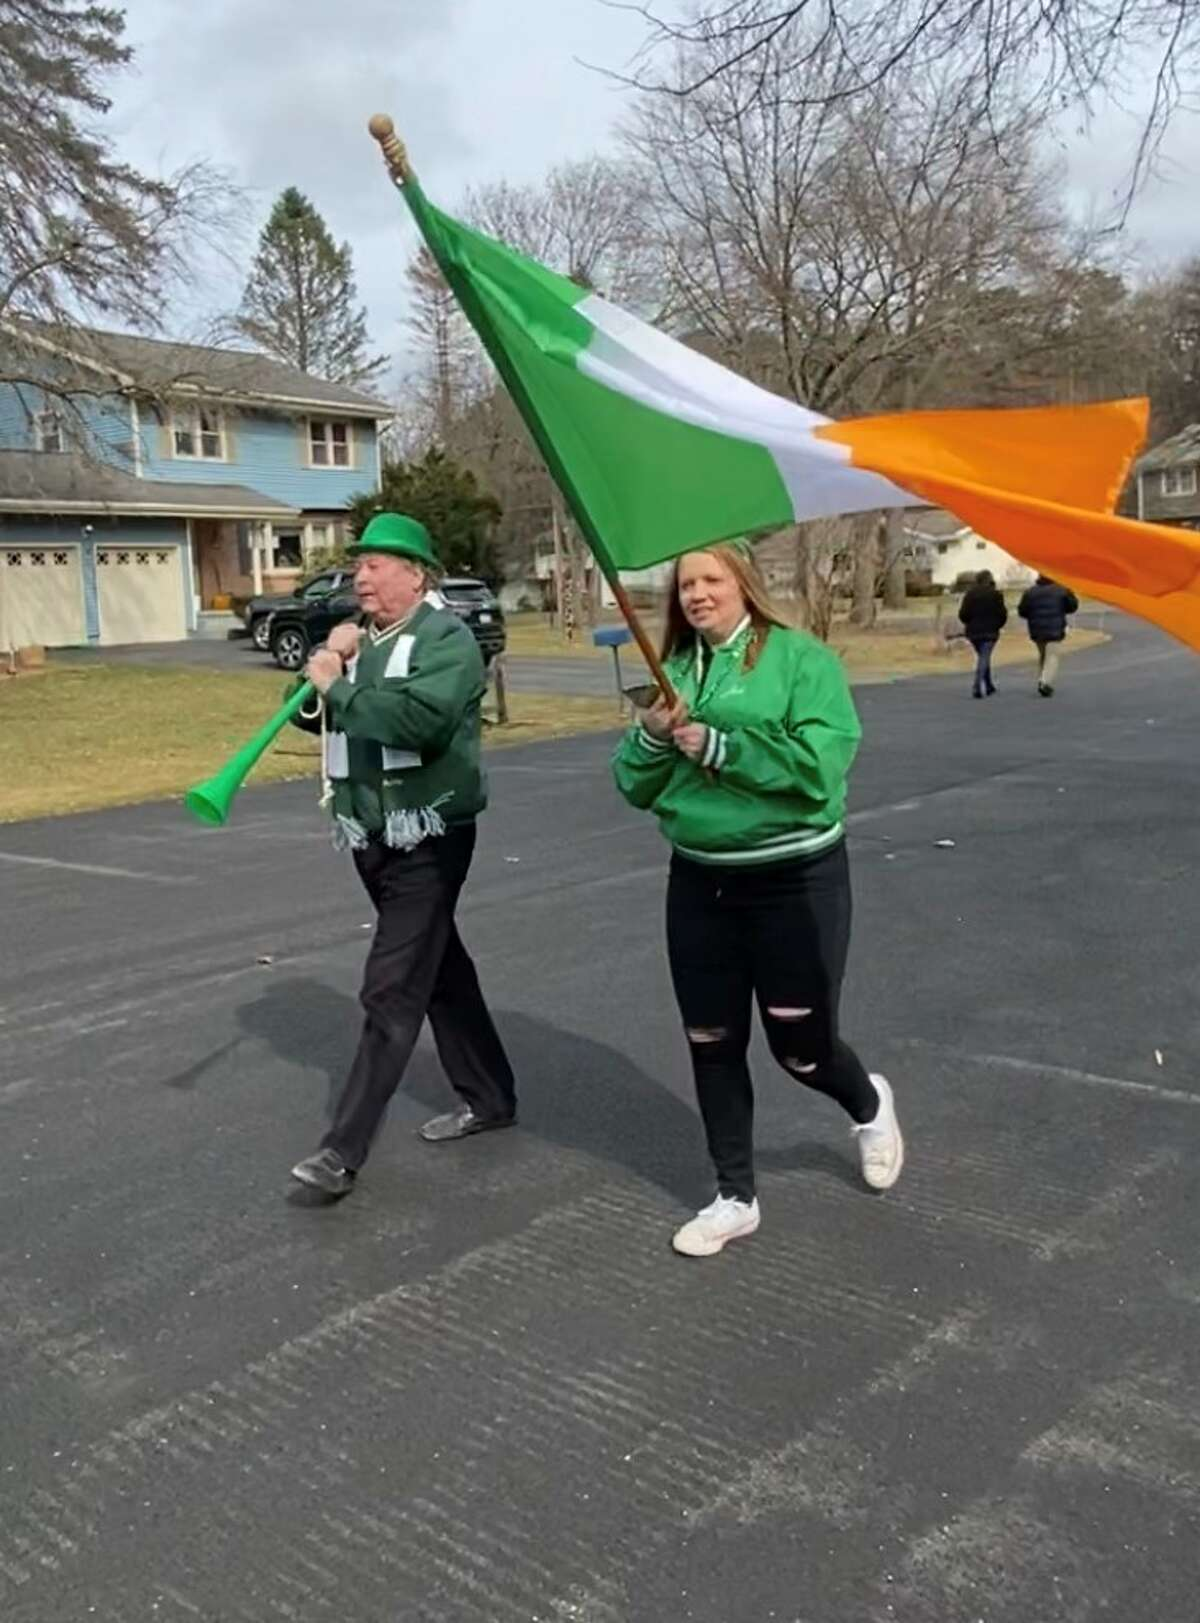 Shane Somerville of Loudonville and Molly Harbour of Menands held a St Patrick's Day Parade in Loudonville in place of the canceled Albany parade. (Beth Harbour)